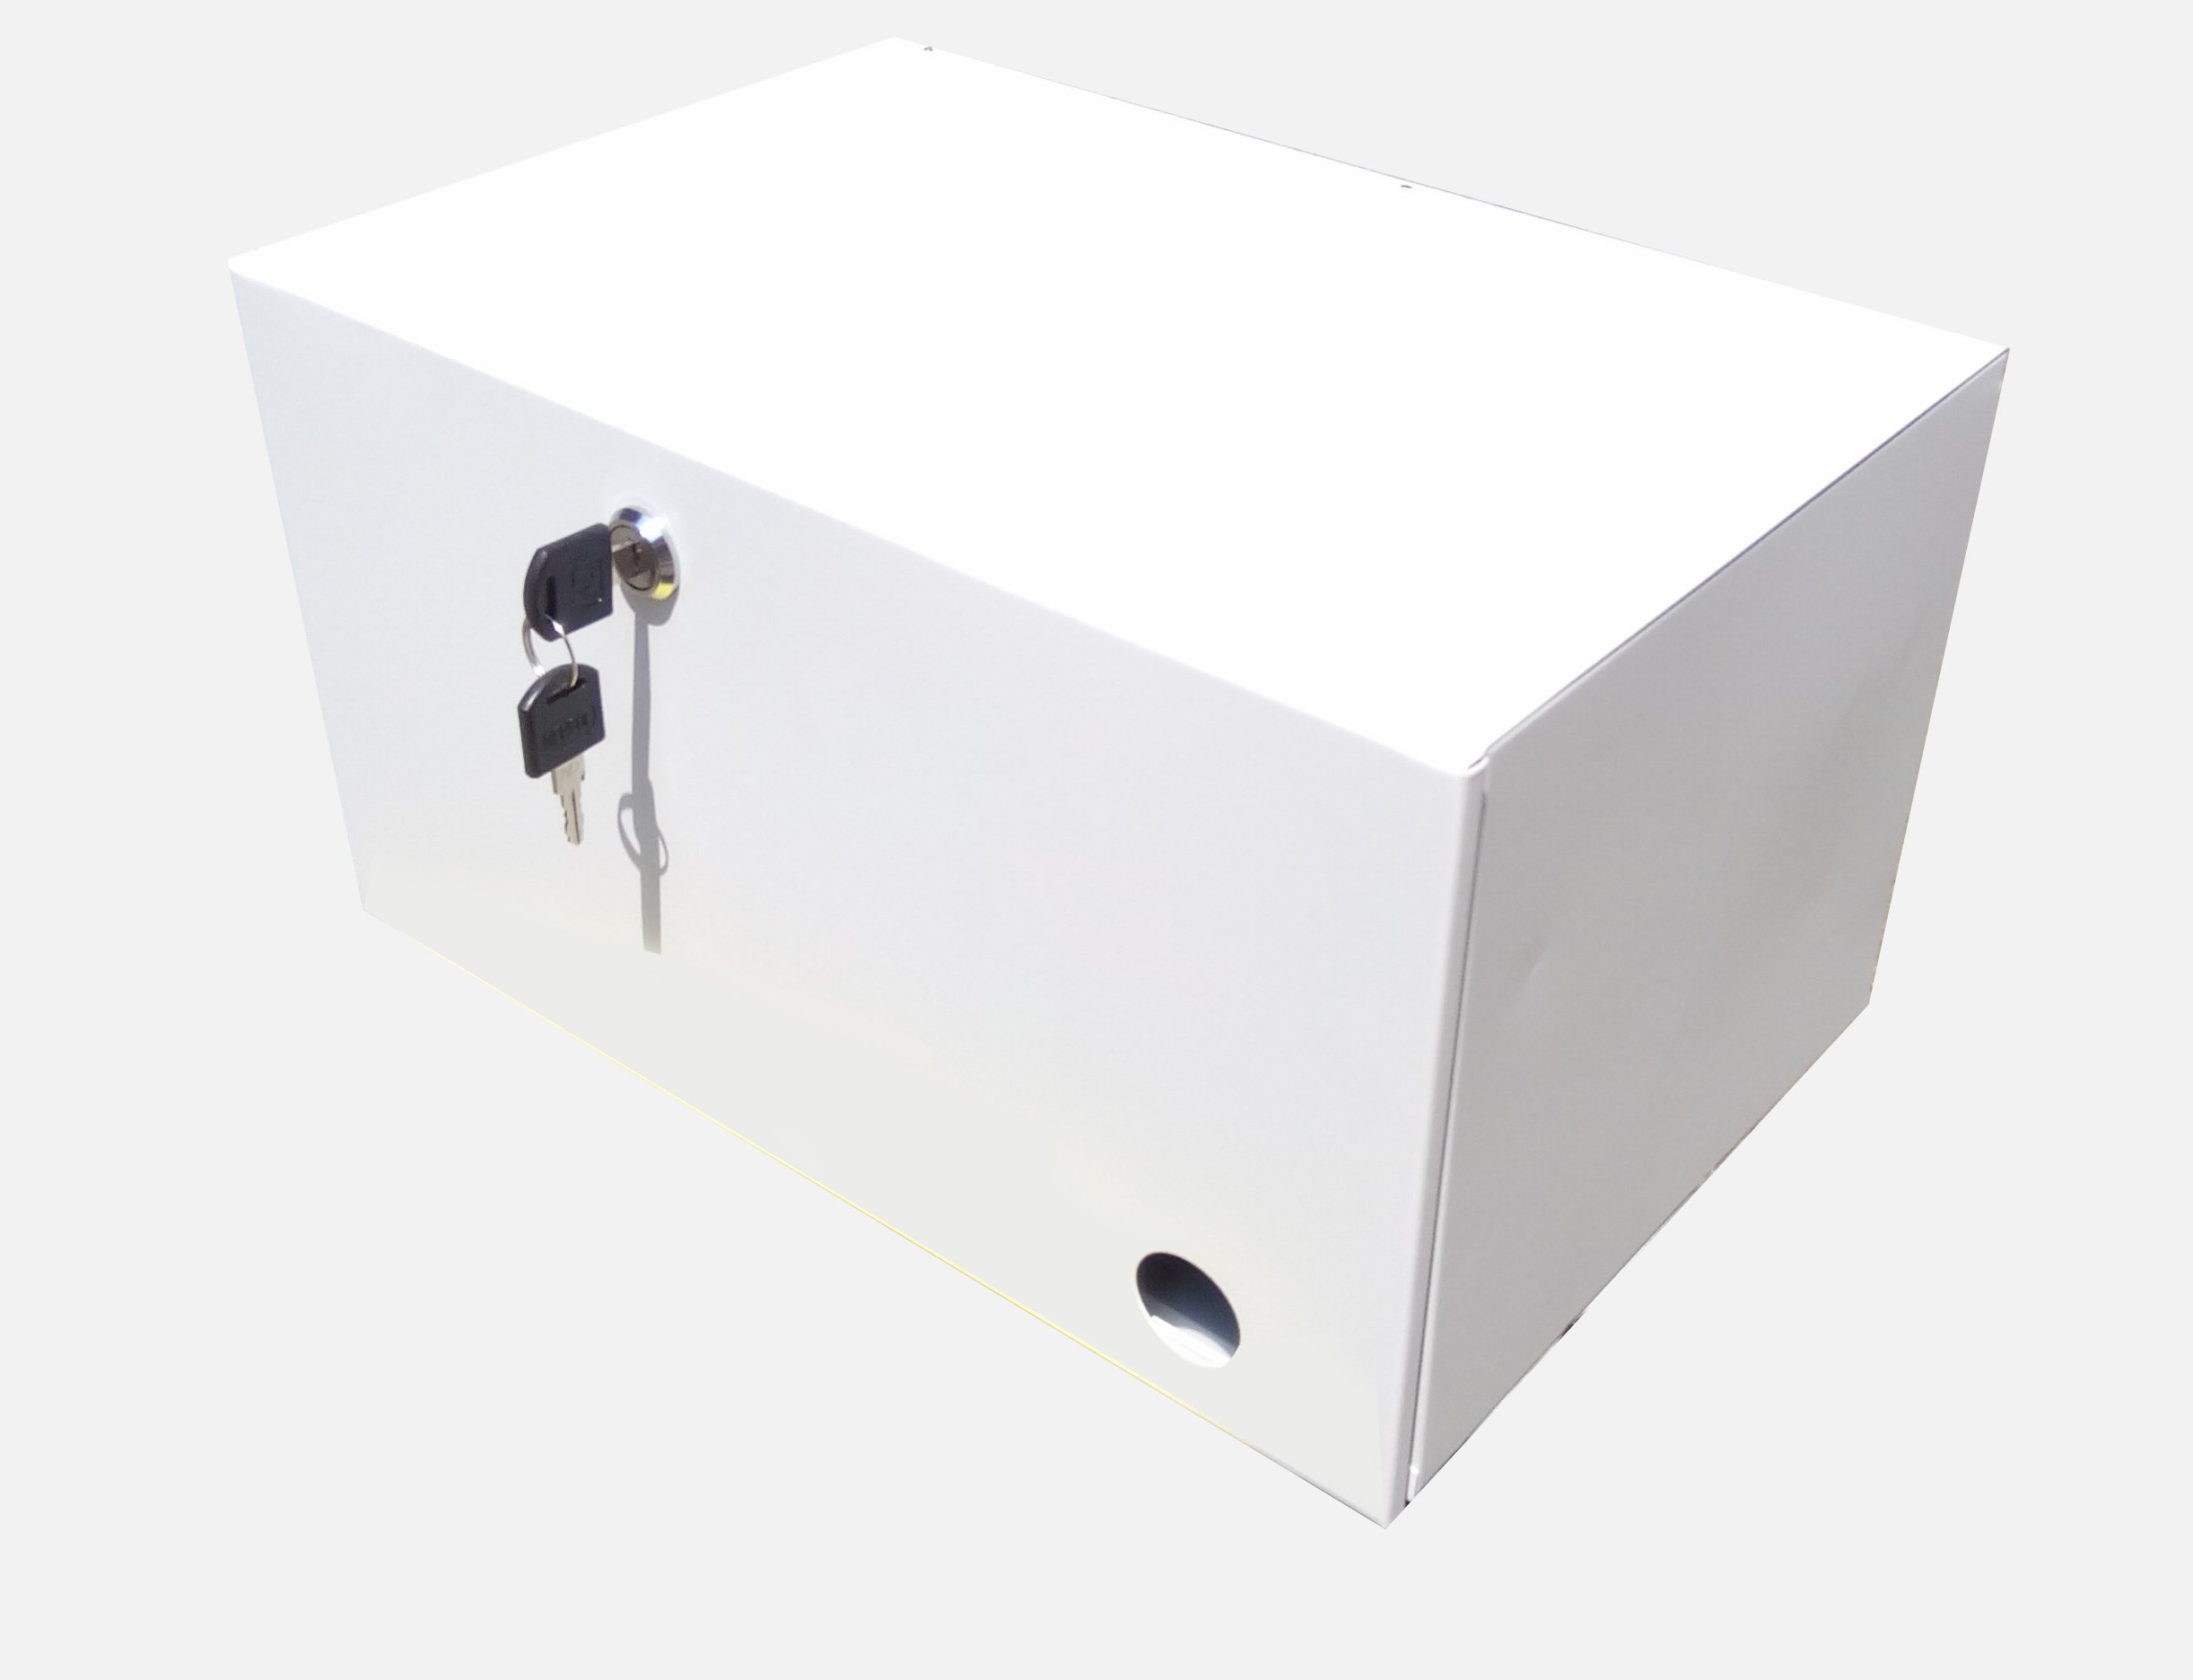 Fixture Displays 6-Slot Cell Phone Ipad Mini Charging Station Lockers Assignment Mail Slot Box 15253 by FixtureDisplays (Image #3)